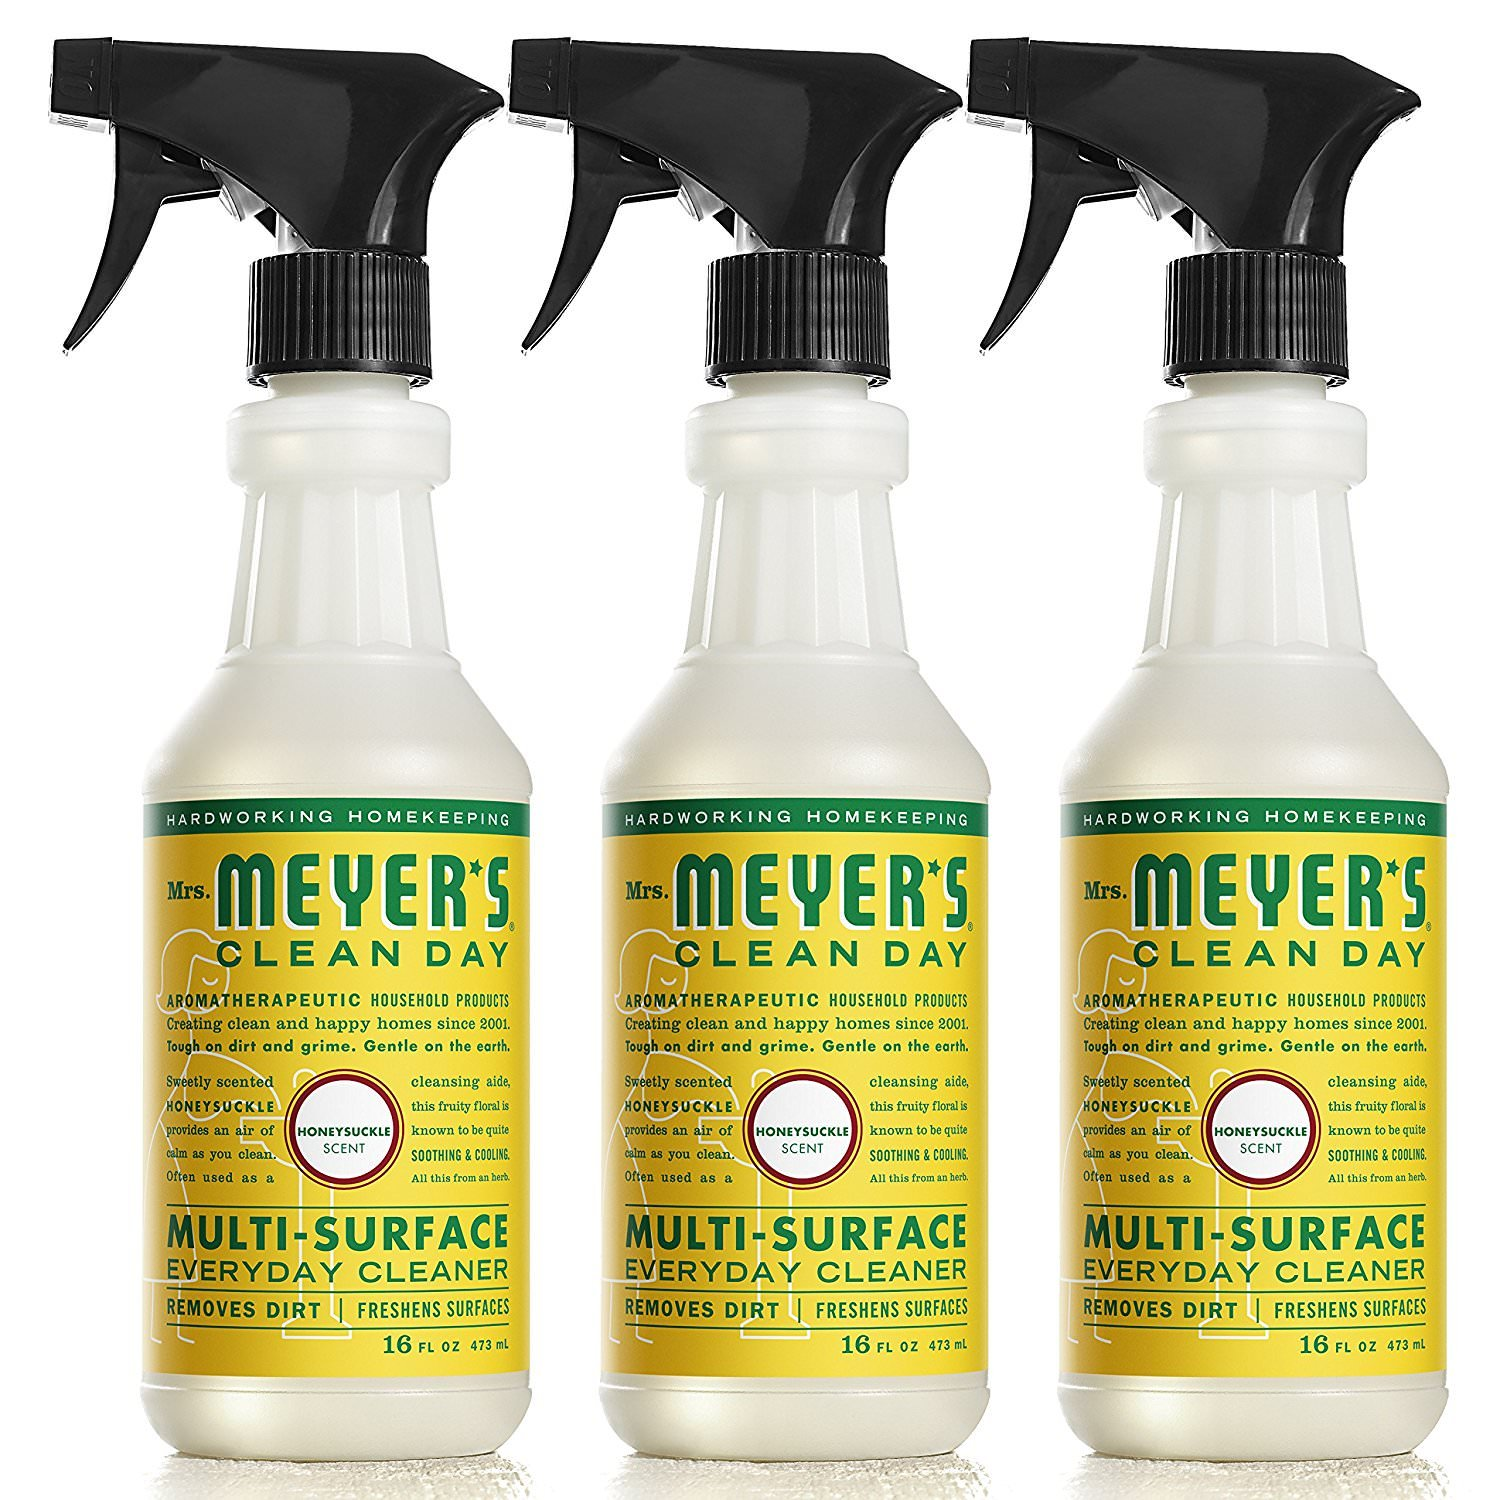 Mrs. Meyers Clean Day Multi-Surface Everyday Cleaner Honeysuckle 16 fl oz, 6 Bottles